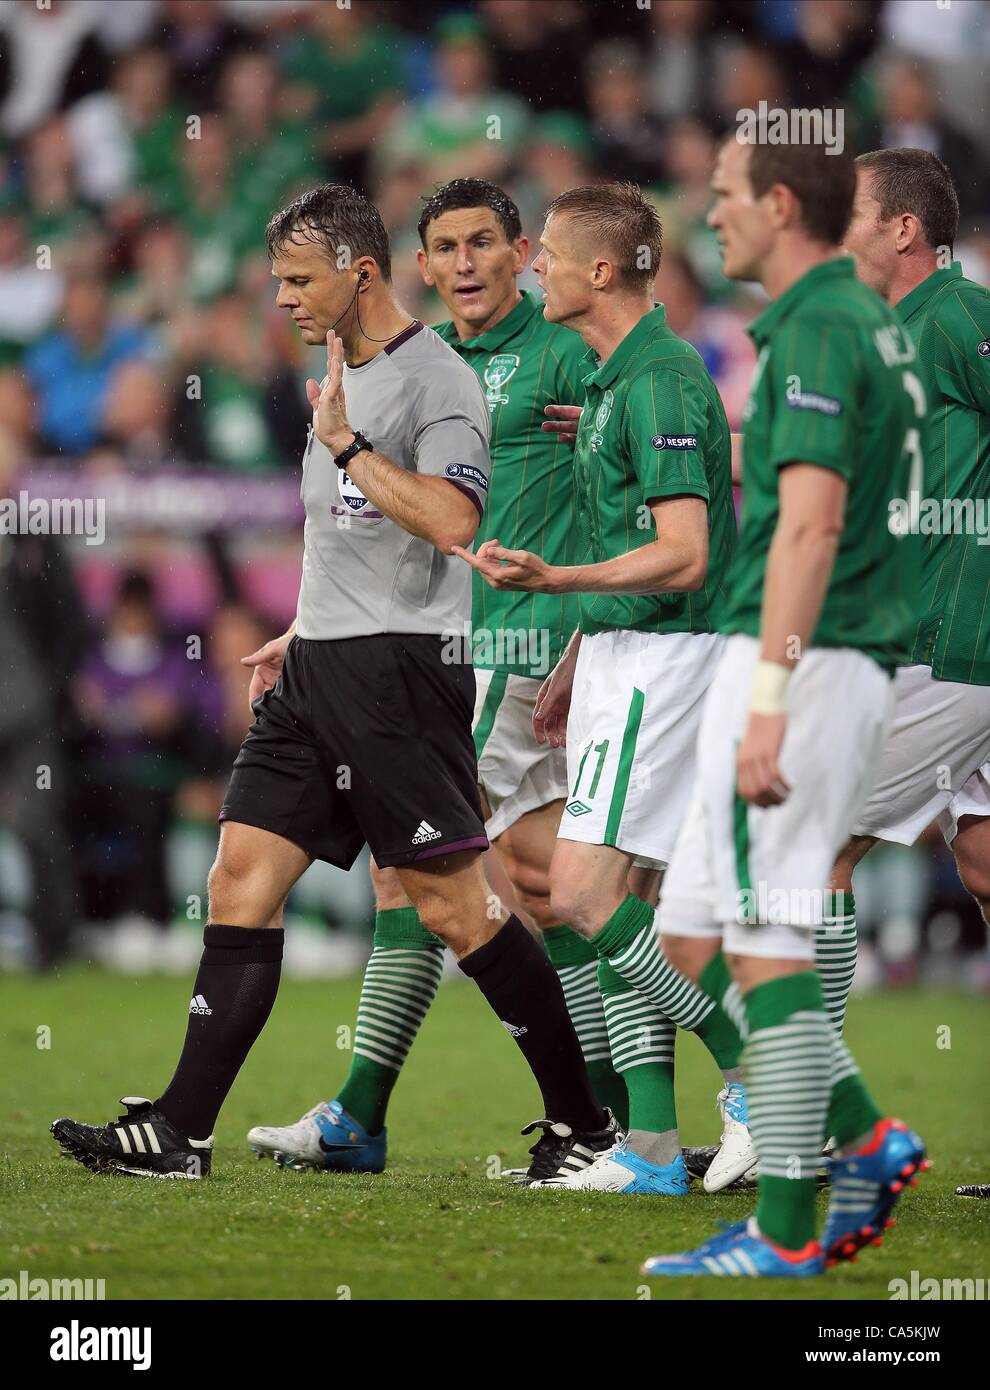 DAMIEN DUFF COMPLAINS TO THE R REP. OF IRELAND V CROATIA MUNICIPAL STADIUM POZNAN POLAND 10 June 2012 - Stock Image